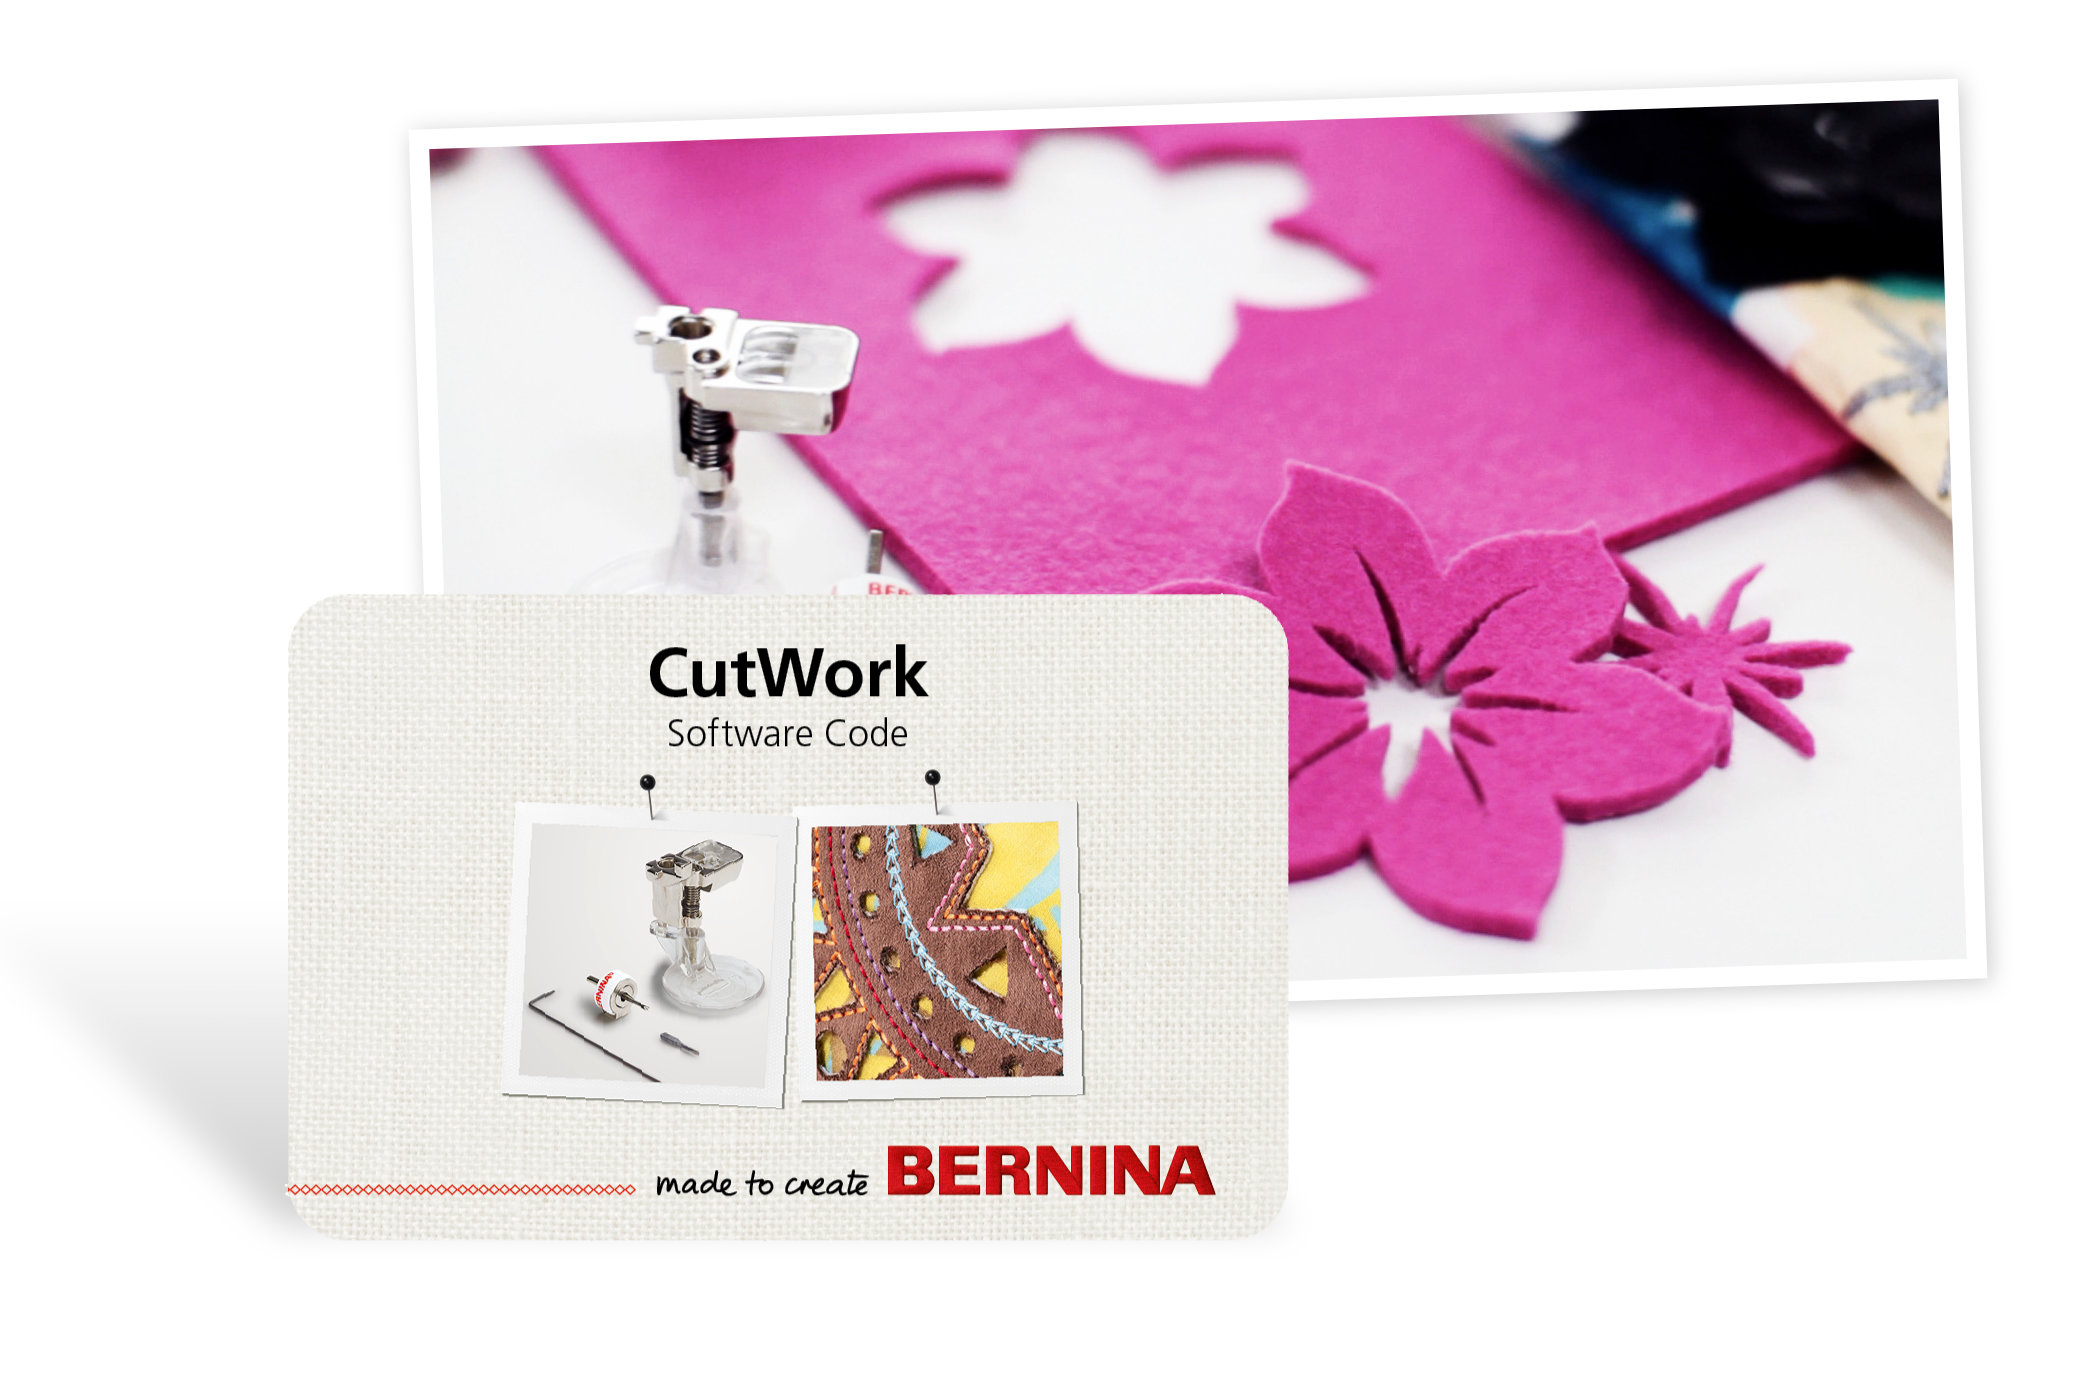 BERNINA CutWork Software